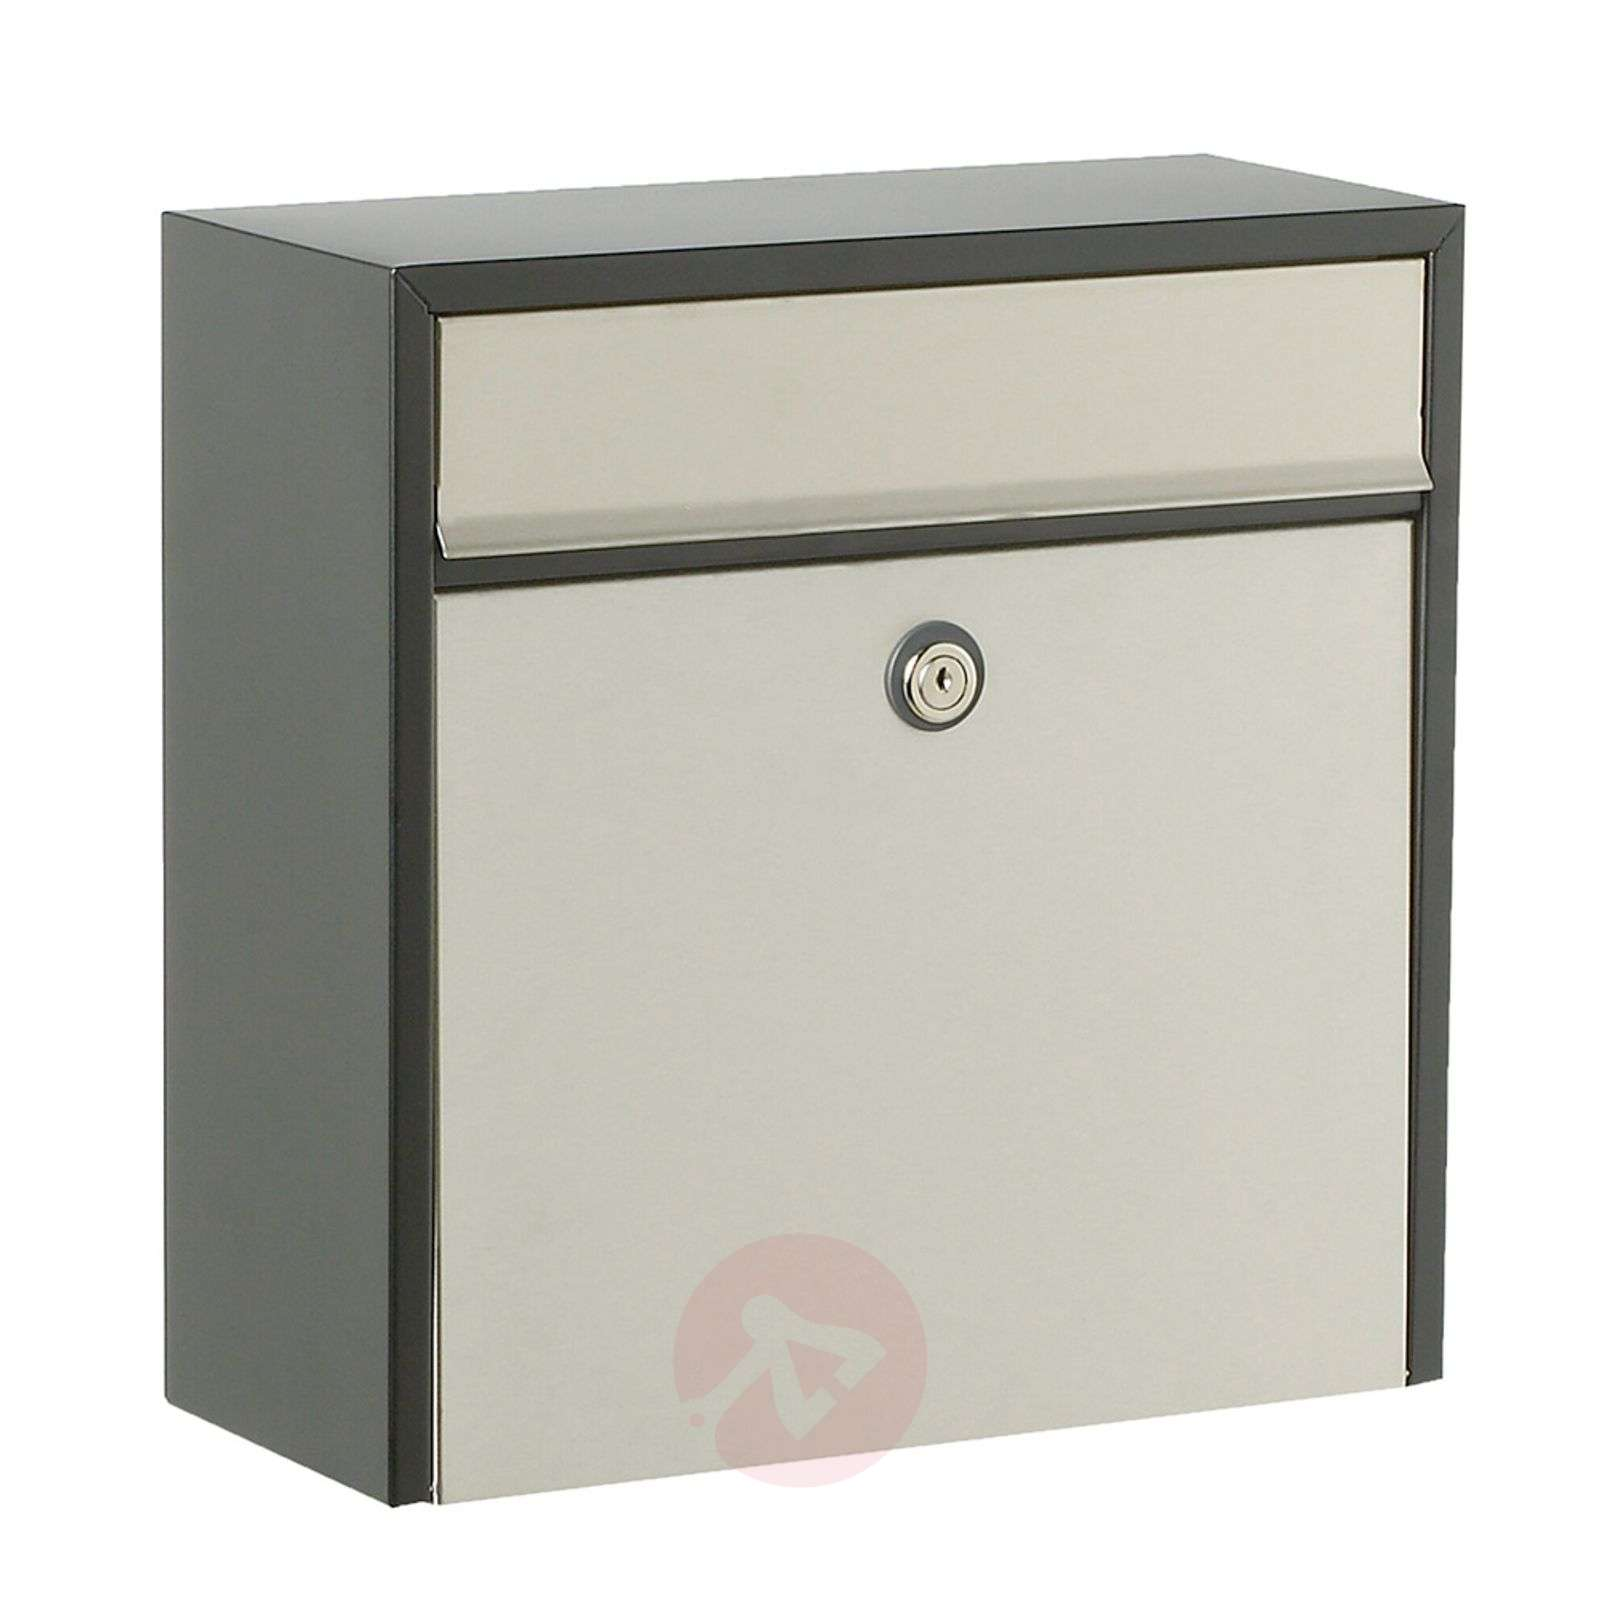 Wall letterbox 250 in elegant design-1045223-01